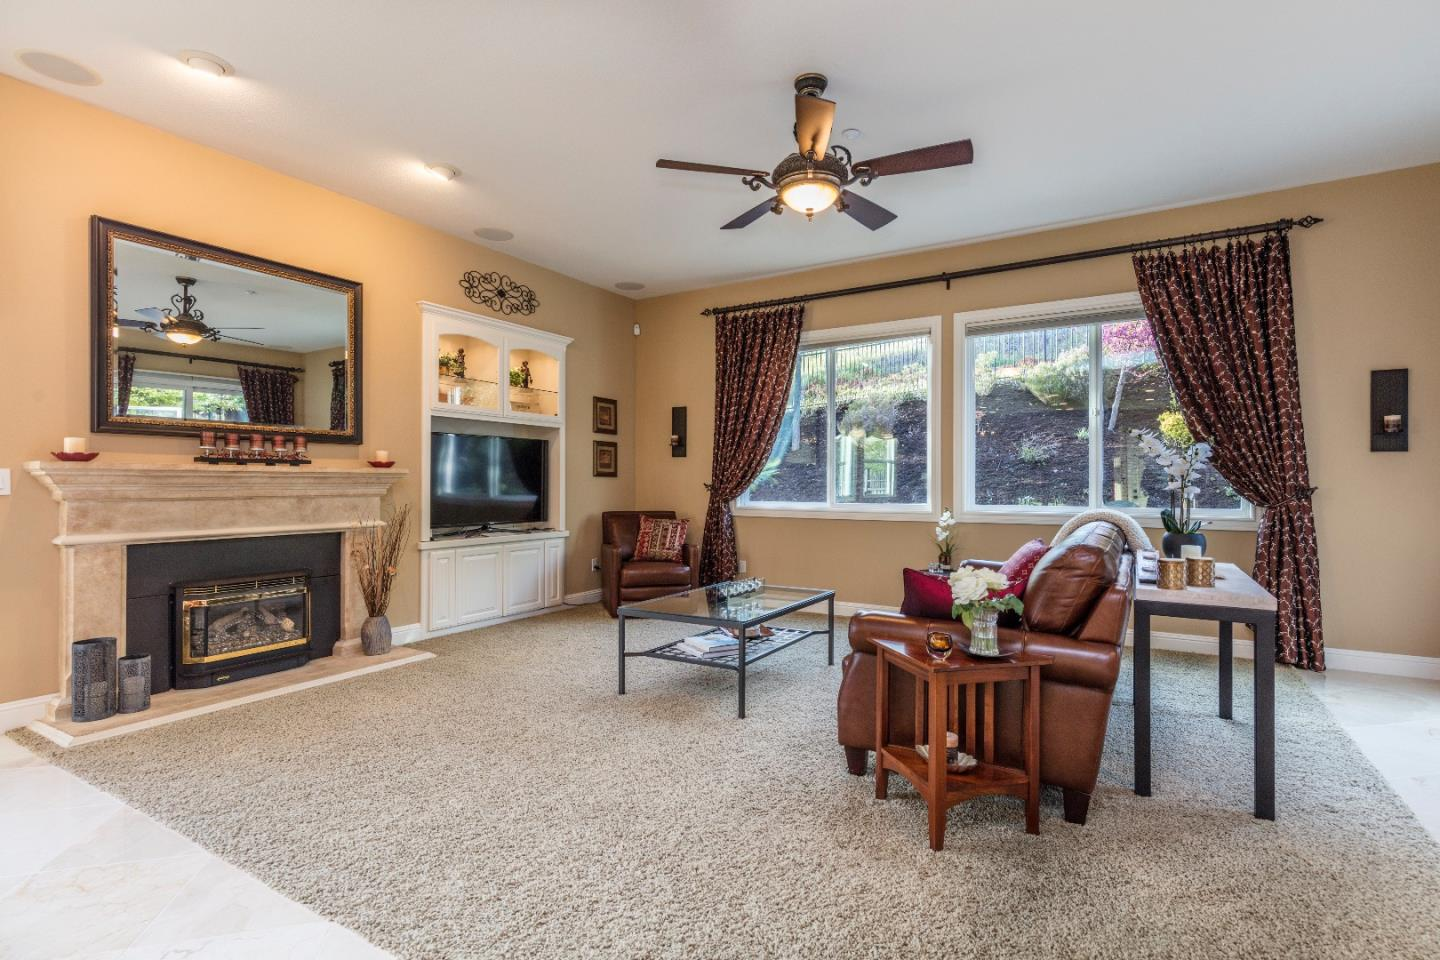 Additional photo for property listing at 3599 Ashbourne Circle  San Ramon, California 94583 United States